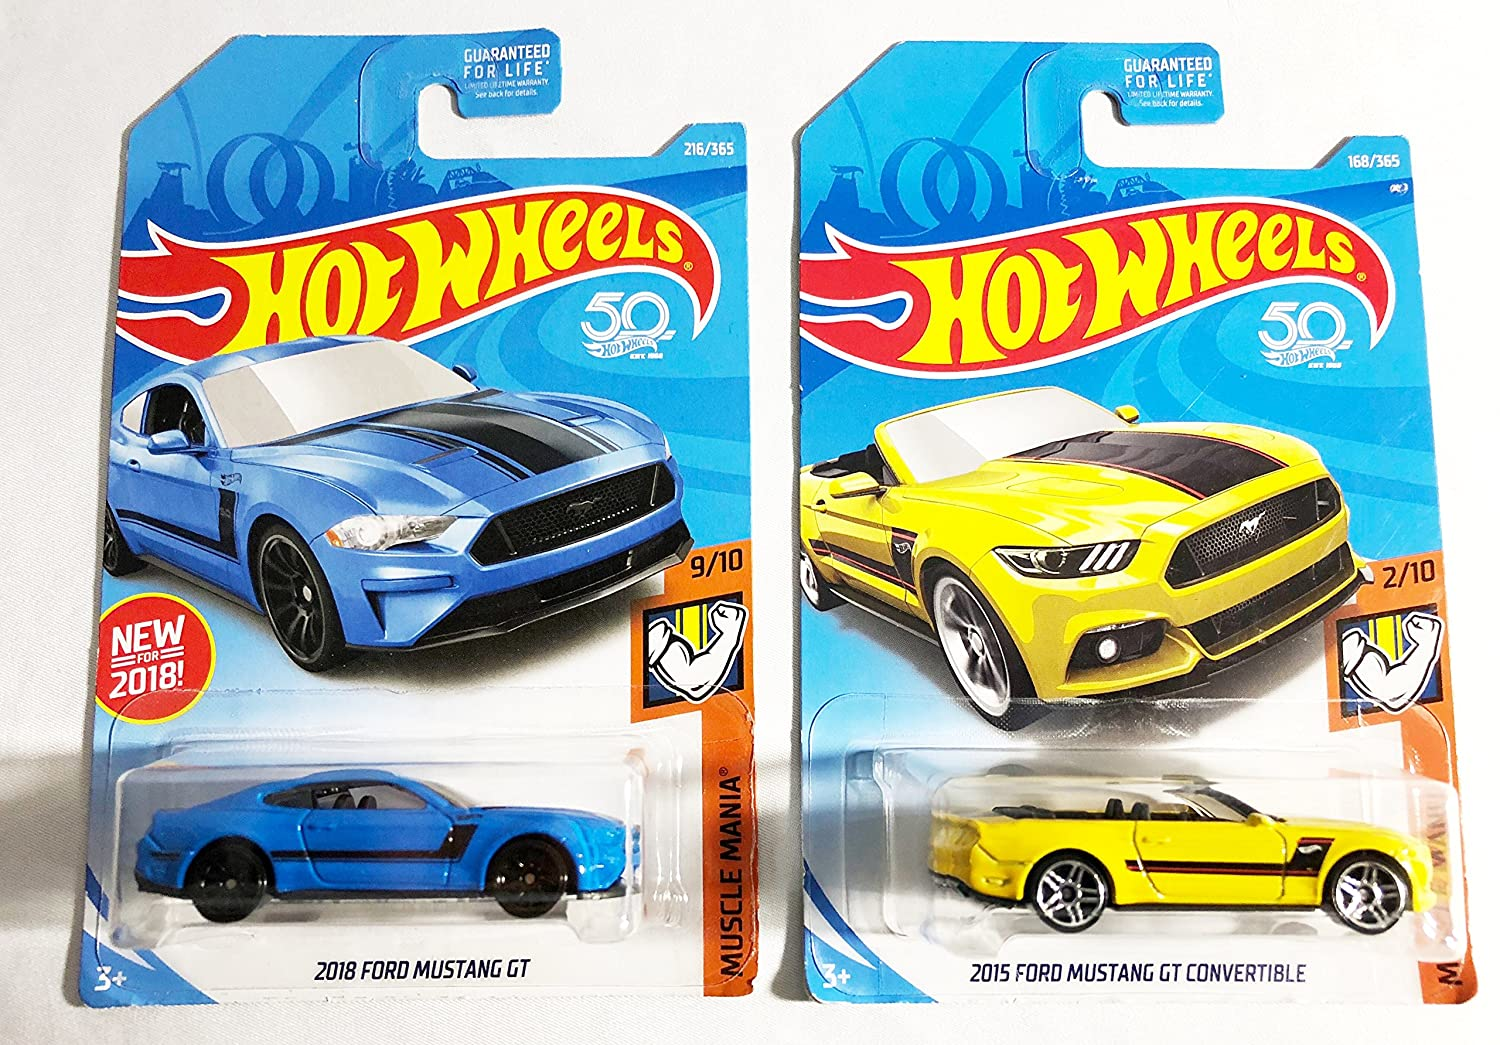 Hot wheels 50th anniversary muscle mania gift pack 2018 ford mustang gt blue 9 10 216 365 2015 ford mustang gt convertible yellow 2 10 168 365